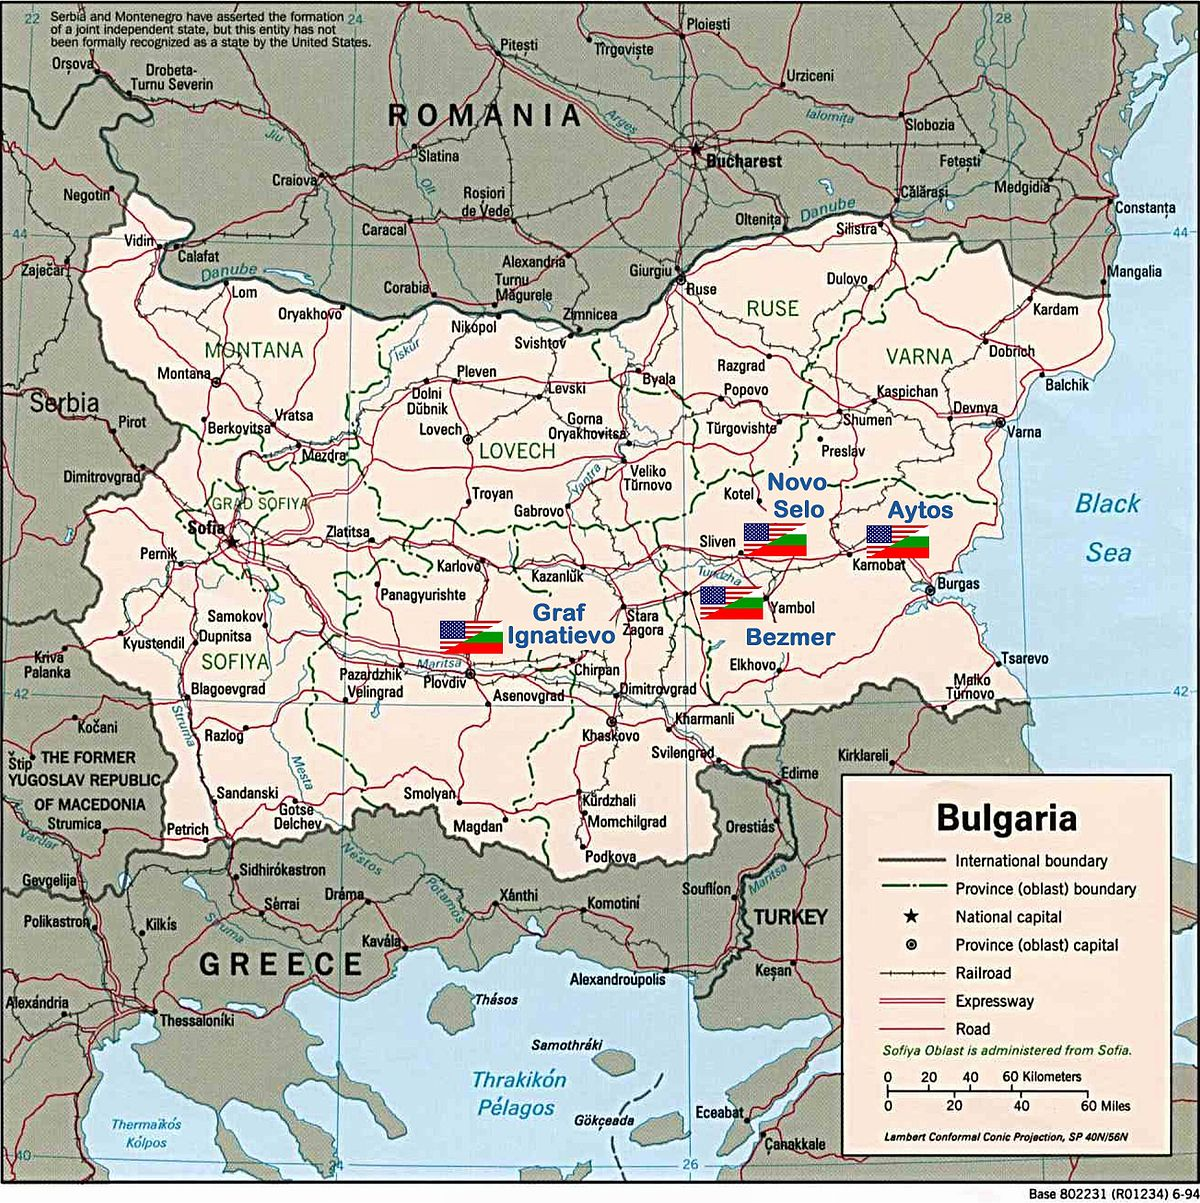 BulgarianAmerican Joint Military Facilities Wikipedia - Map of us military bases in usa